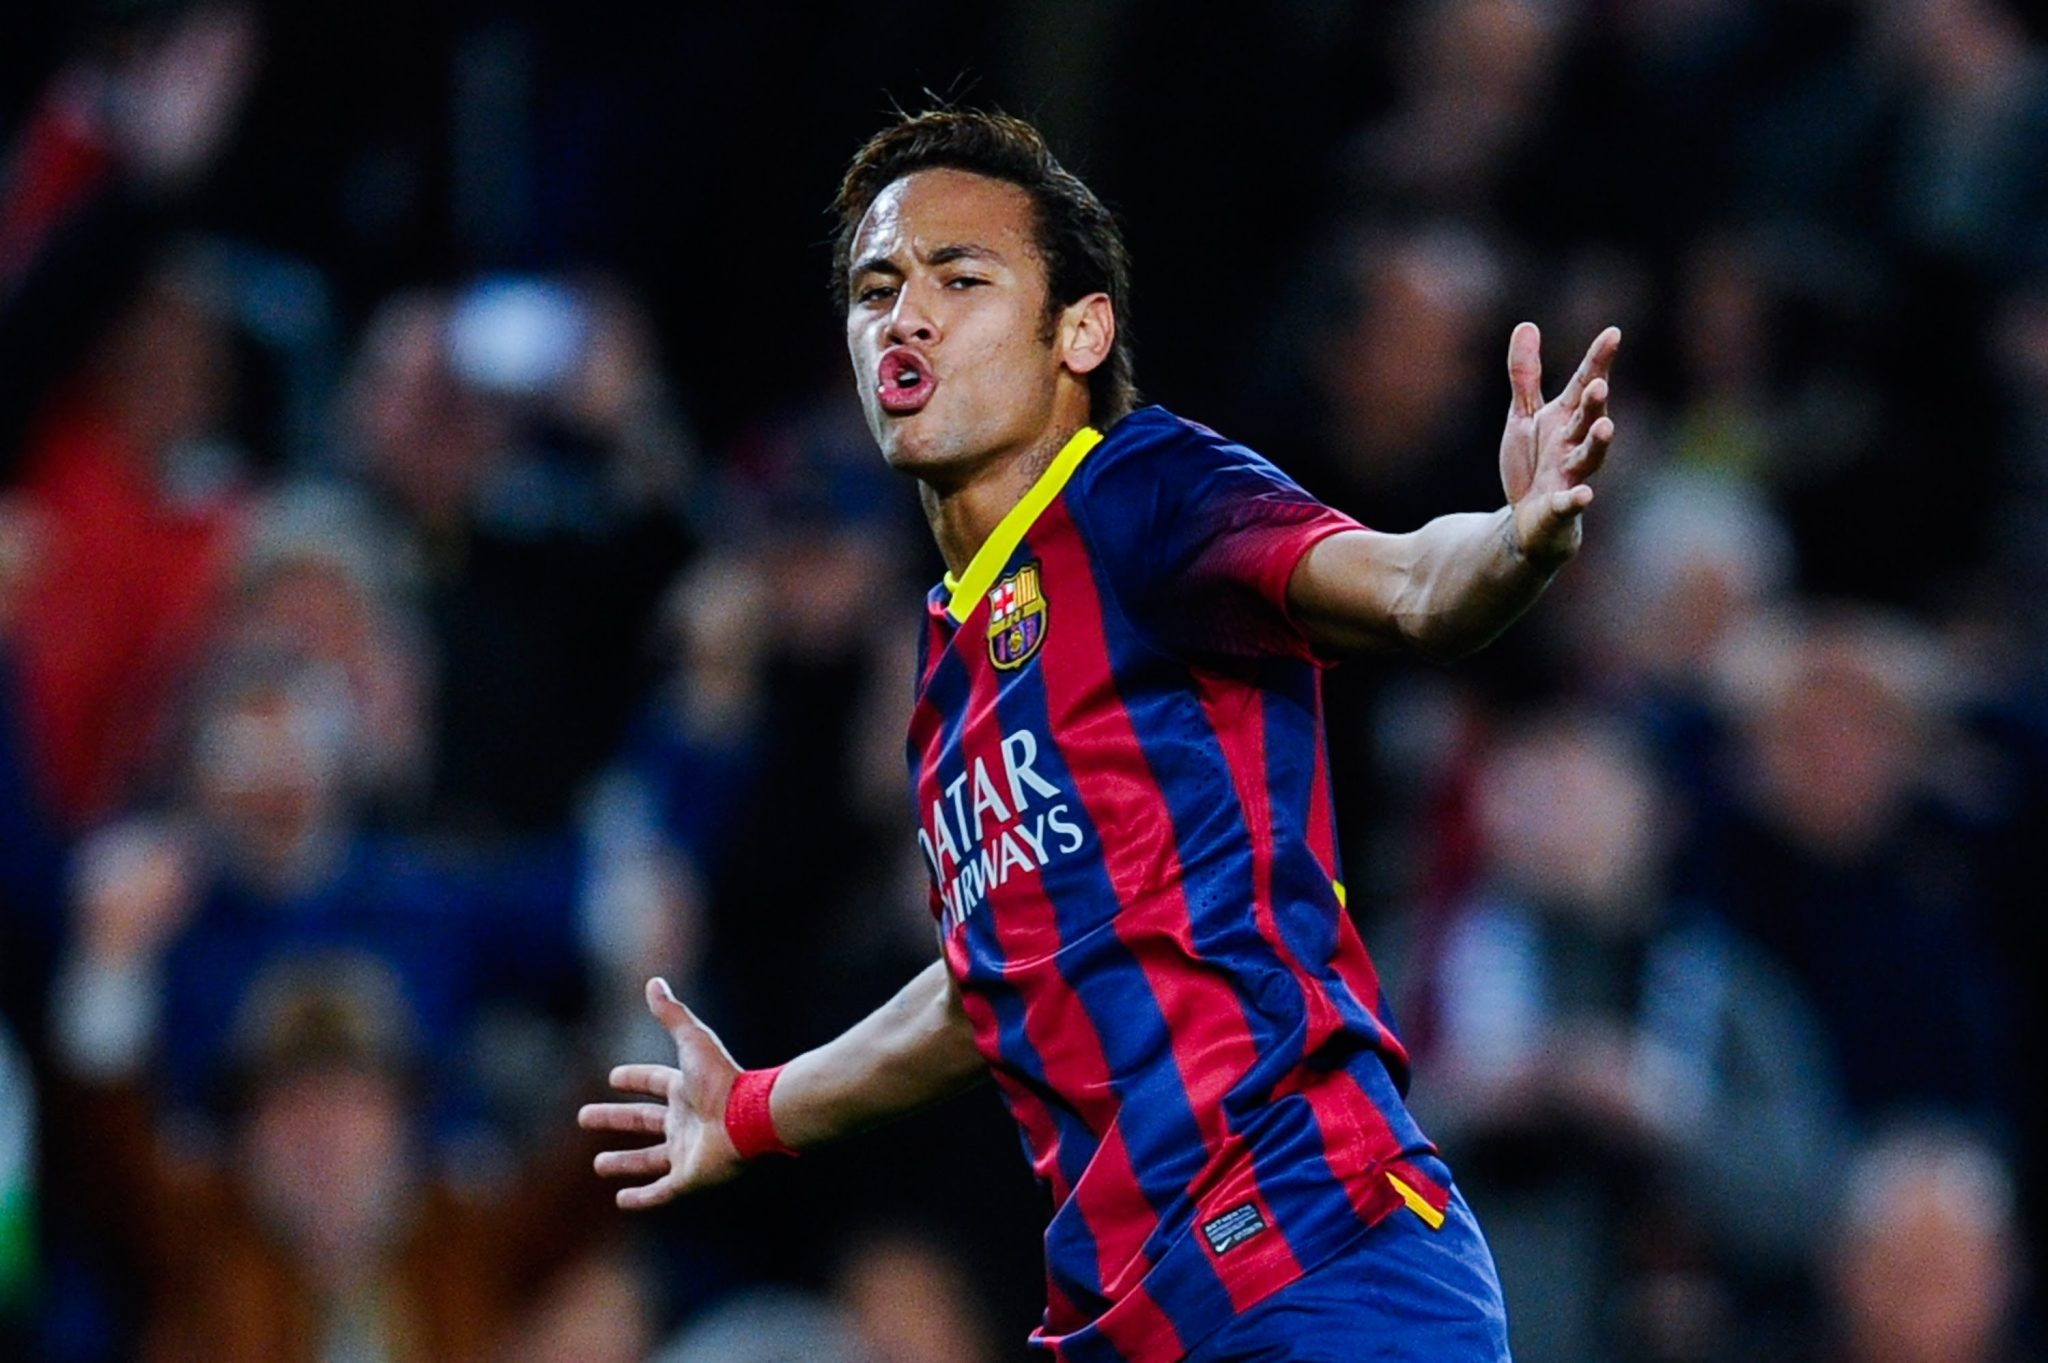 Neymar has fitted really well in the Barcelona side